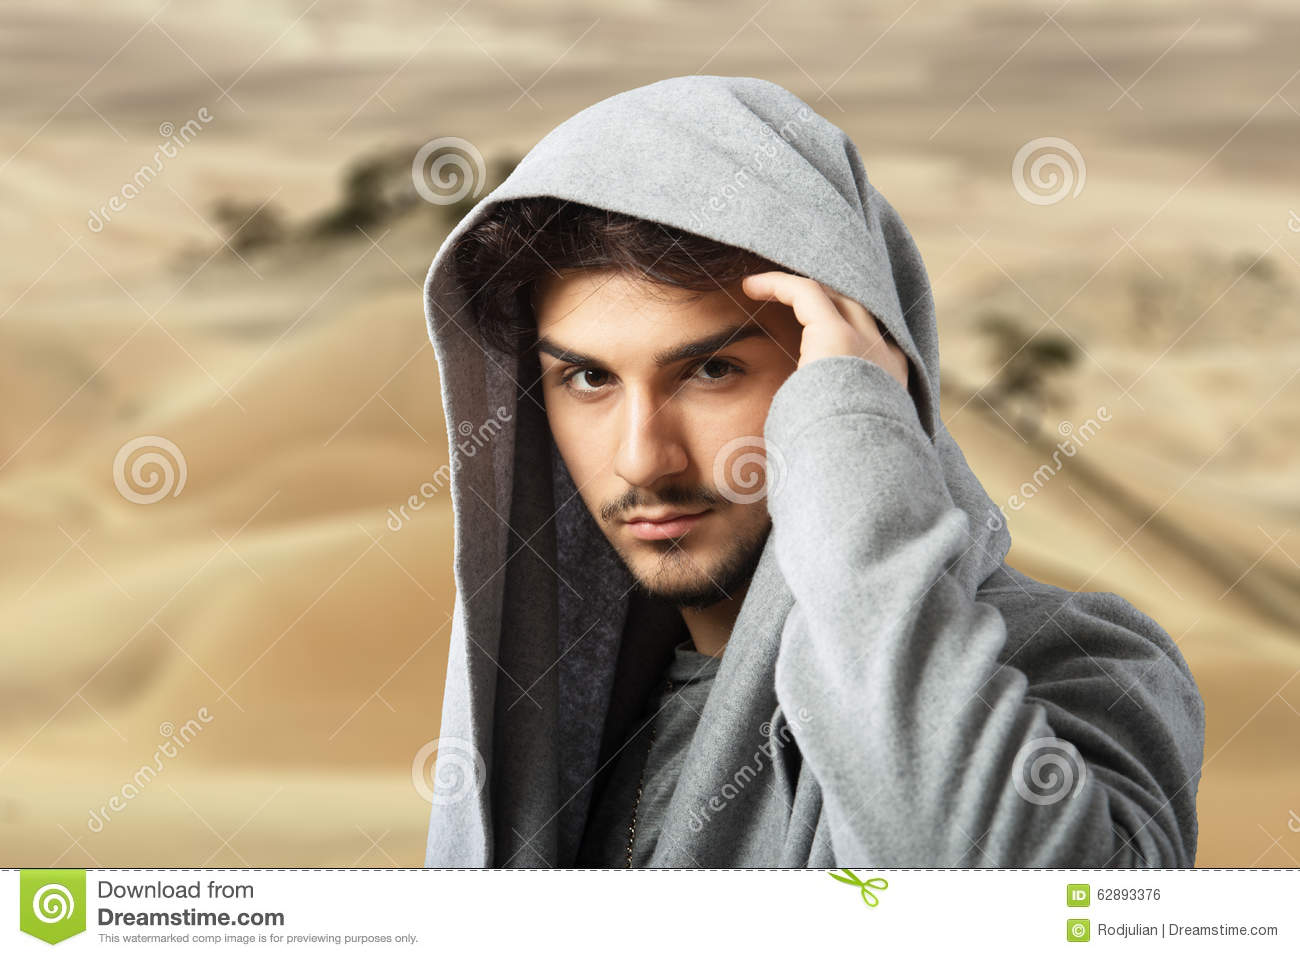 arabian style male portrait stock photo image of neck hiding